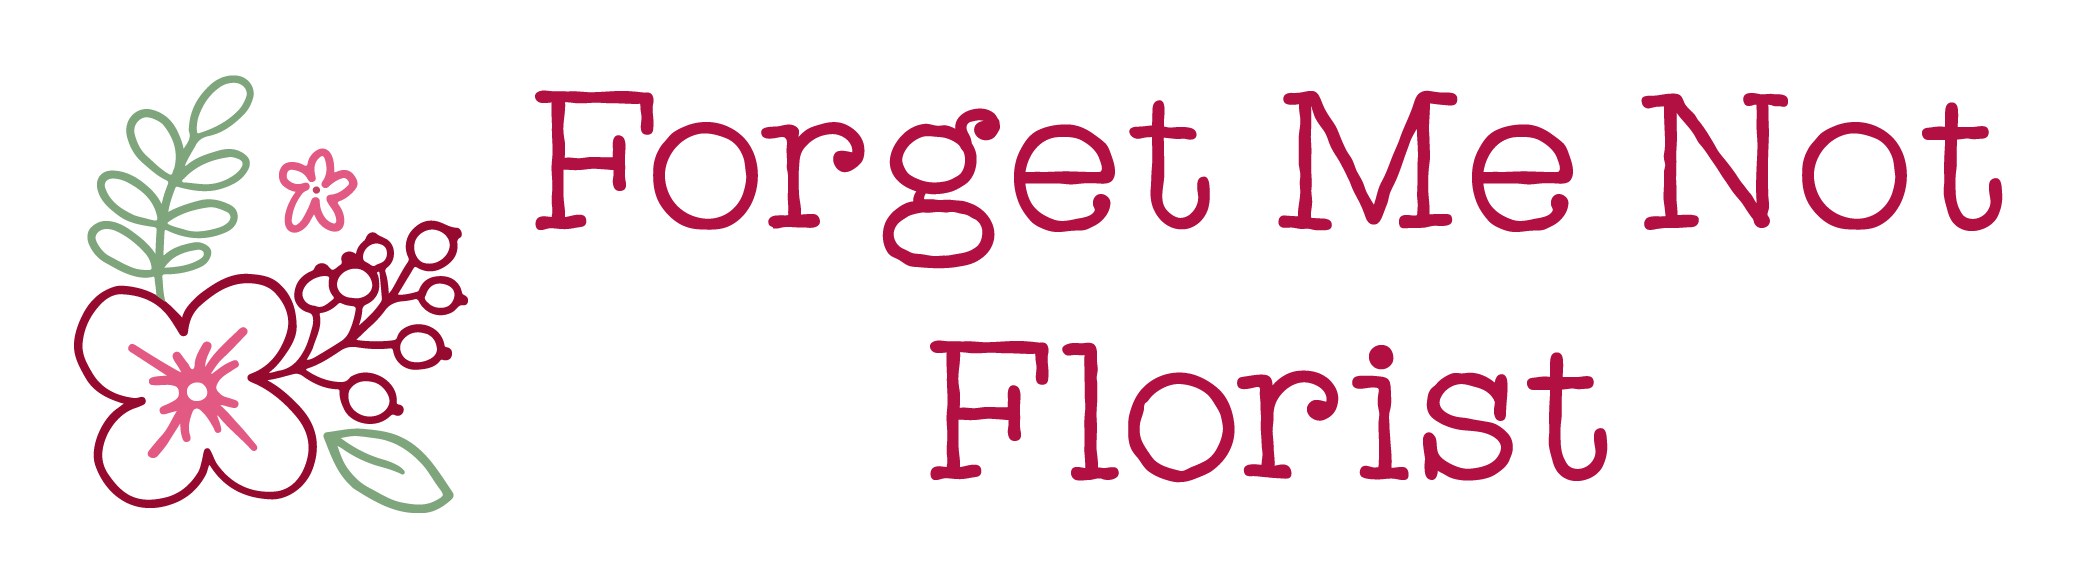 Forget Me Not Florist - Flower Delivery in Ackerman, MS